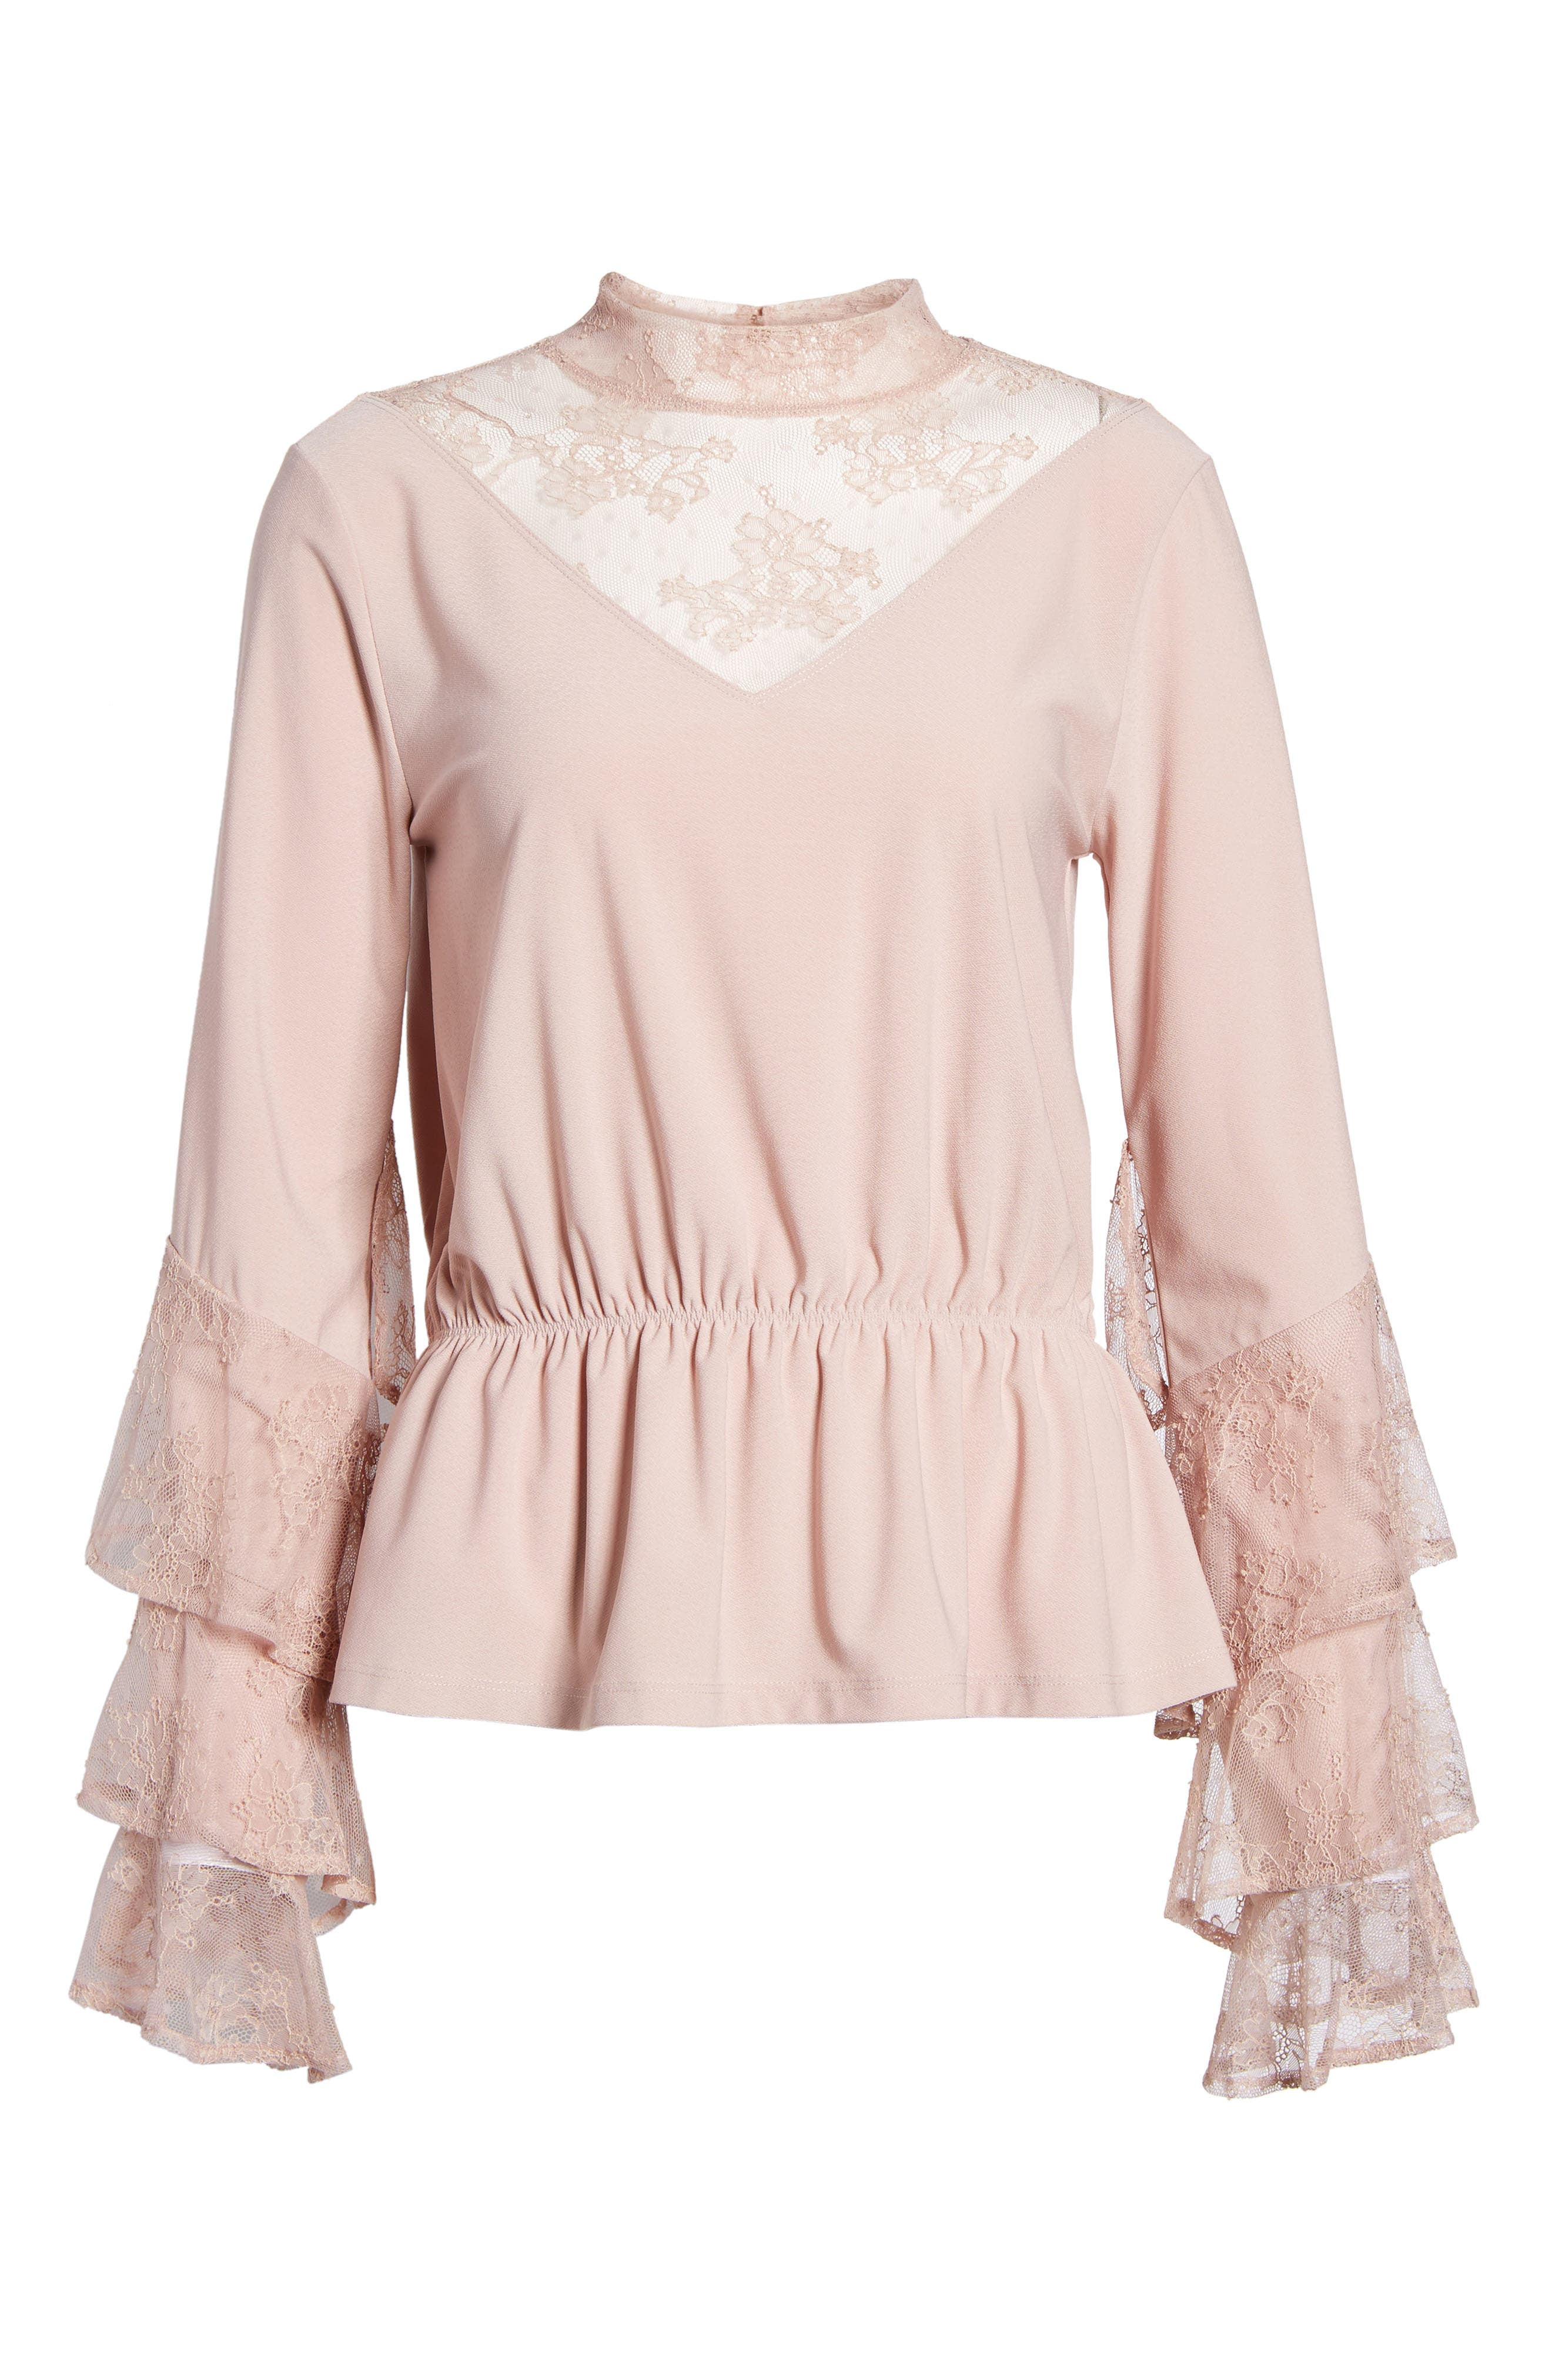 Spiral Lace Top,                             Alternate thumbnail 6, color,                             680